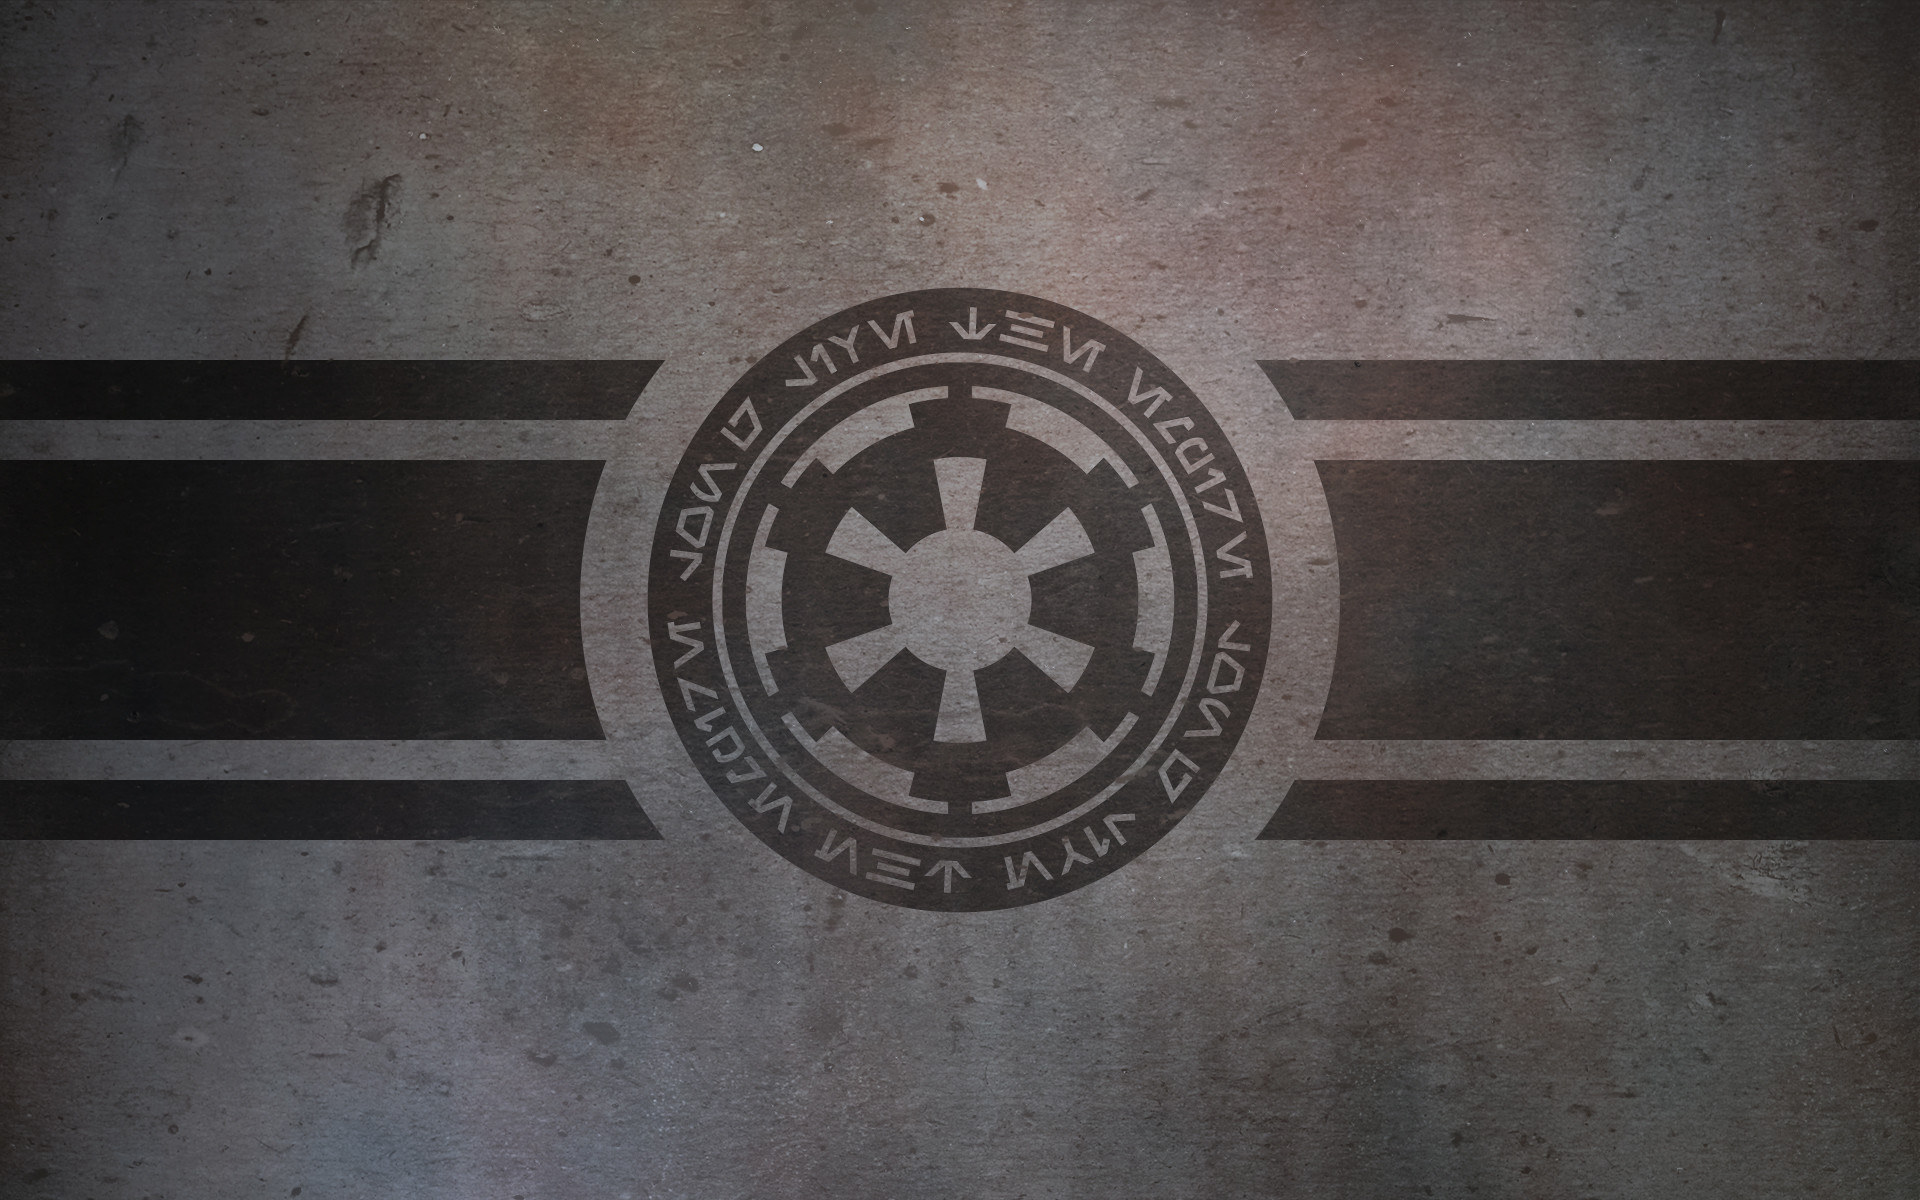 1920x1200 The Galactic Empire (Wallpaper) image - Le Fancy Wallpapers - Mod DB